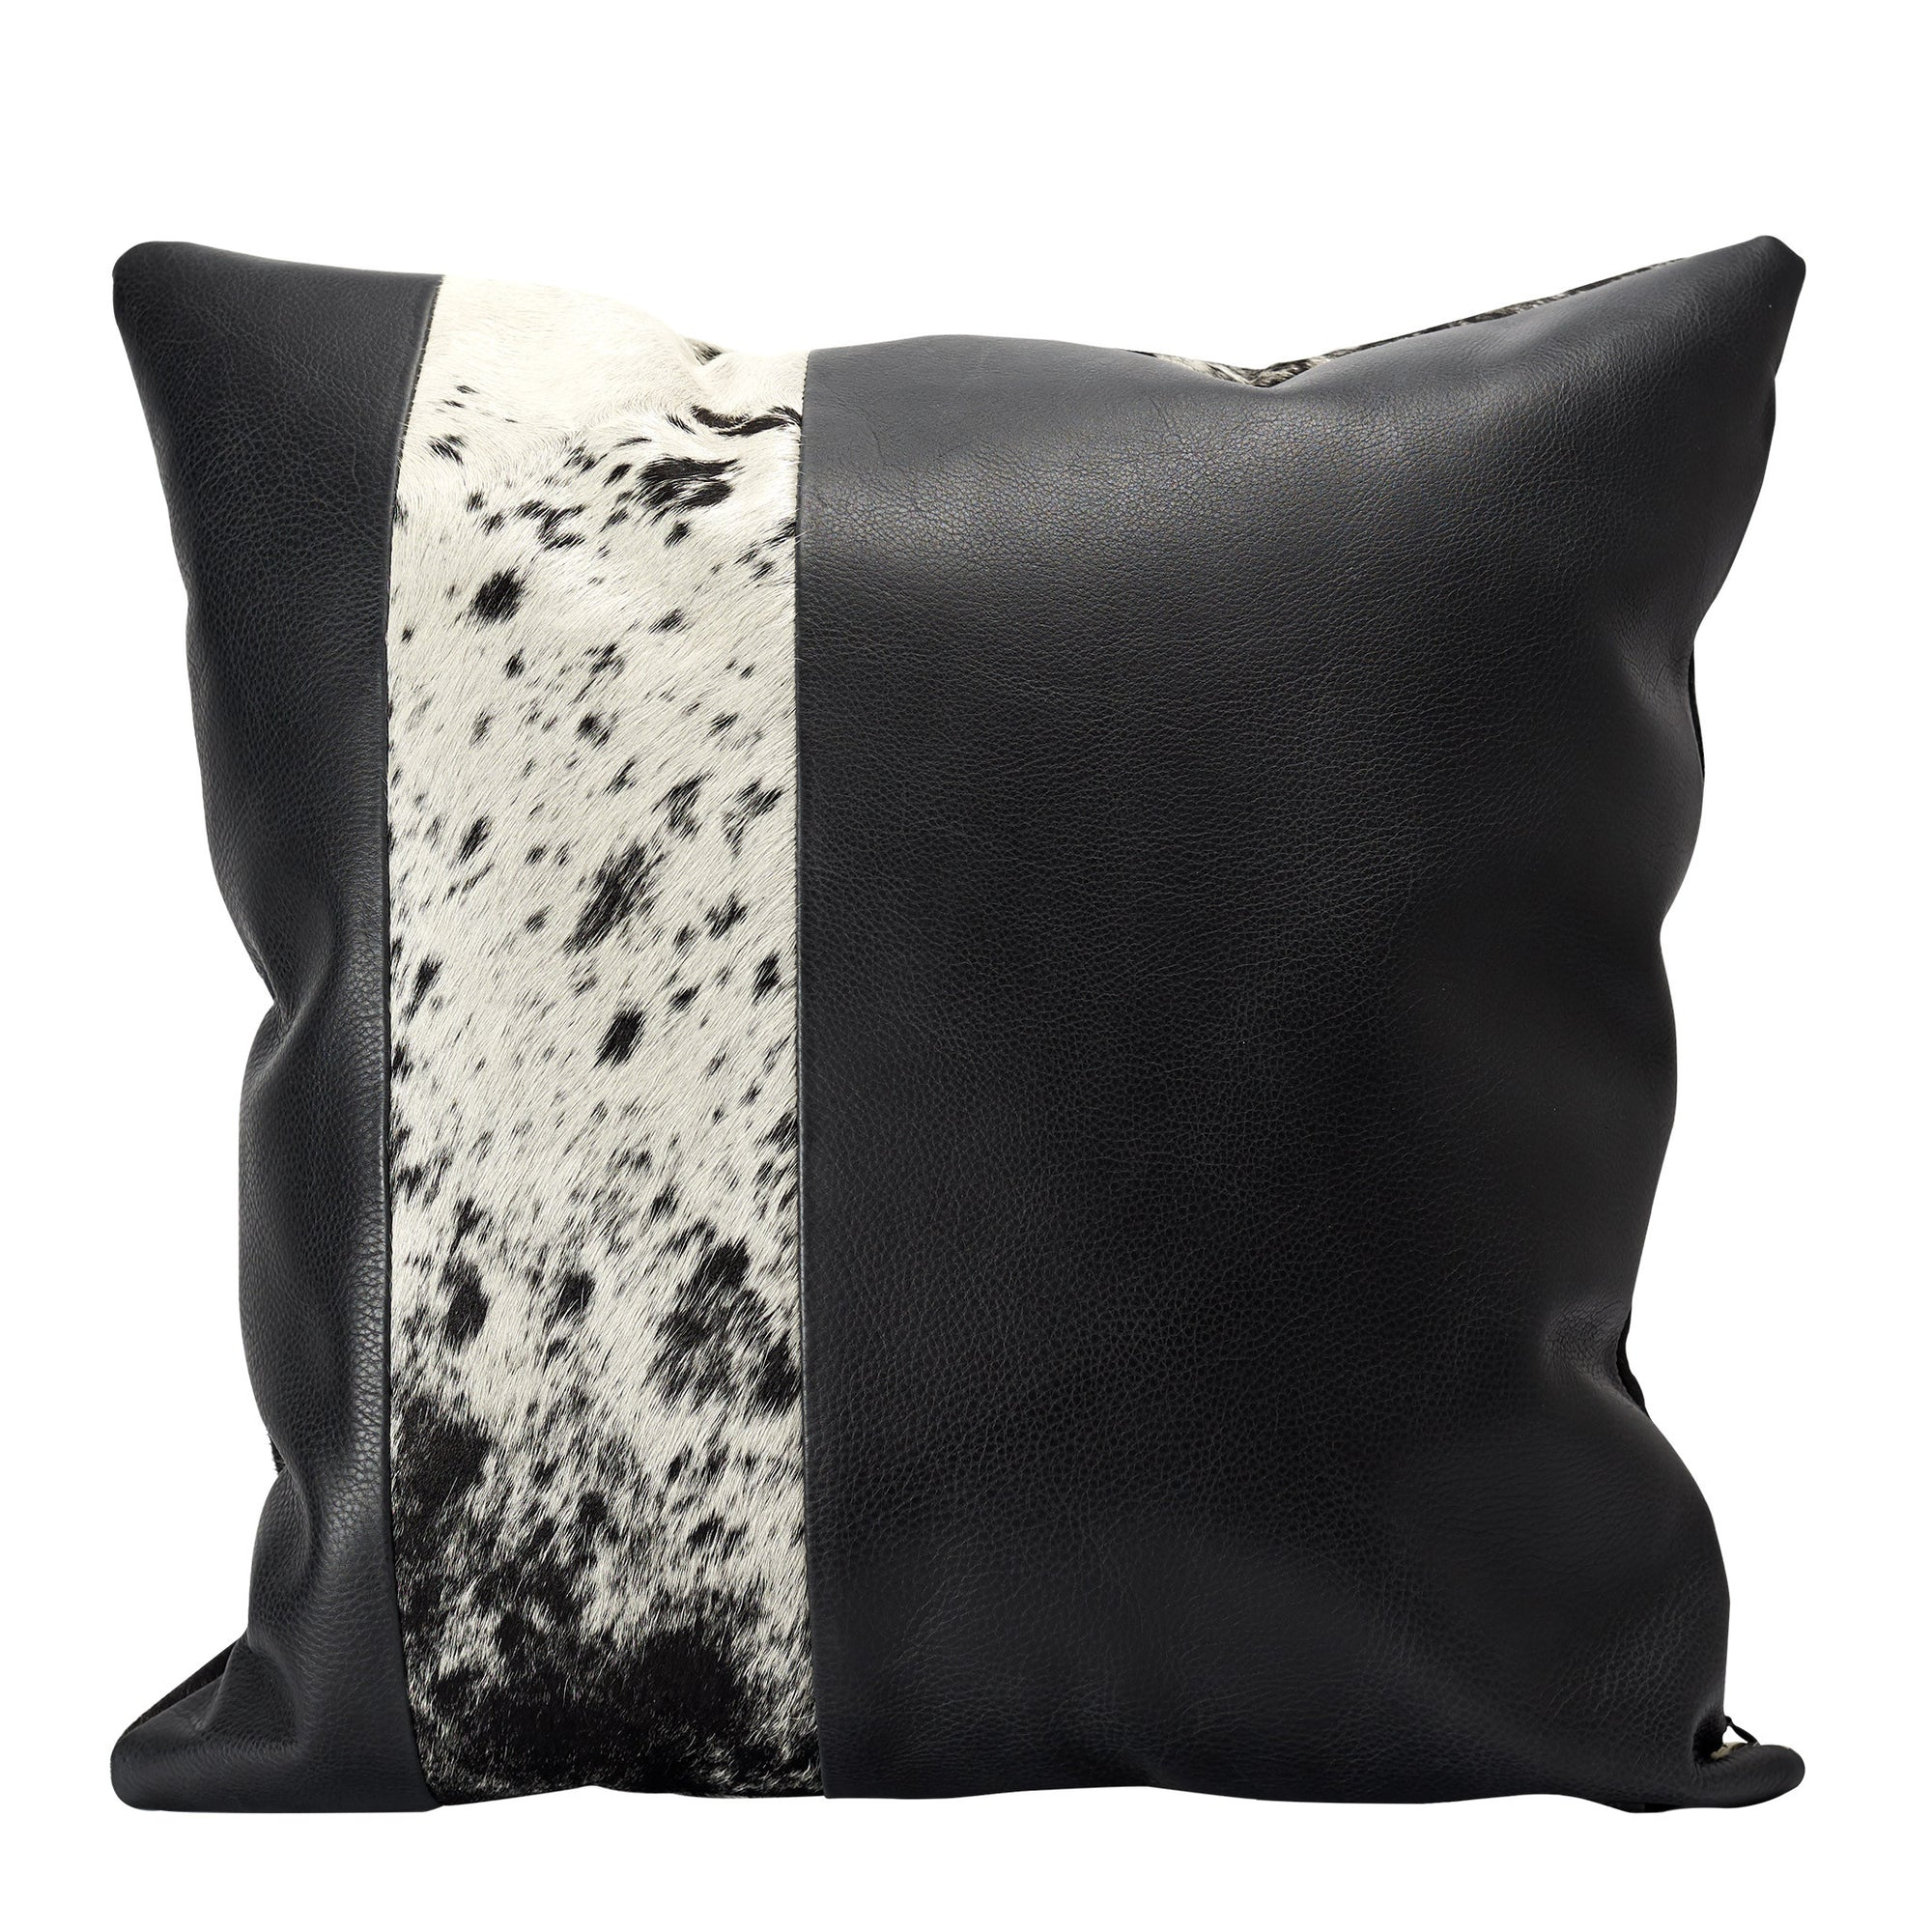 Dual Cushion Pillow #1 · Black